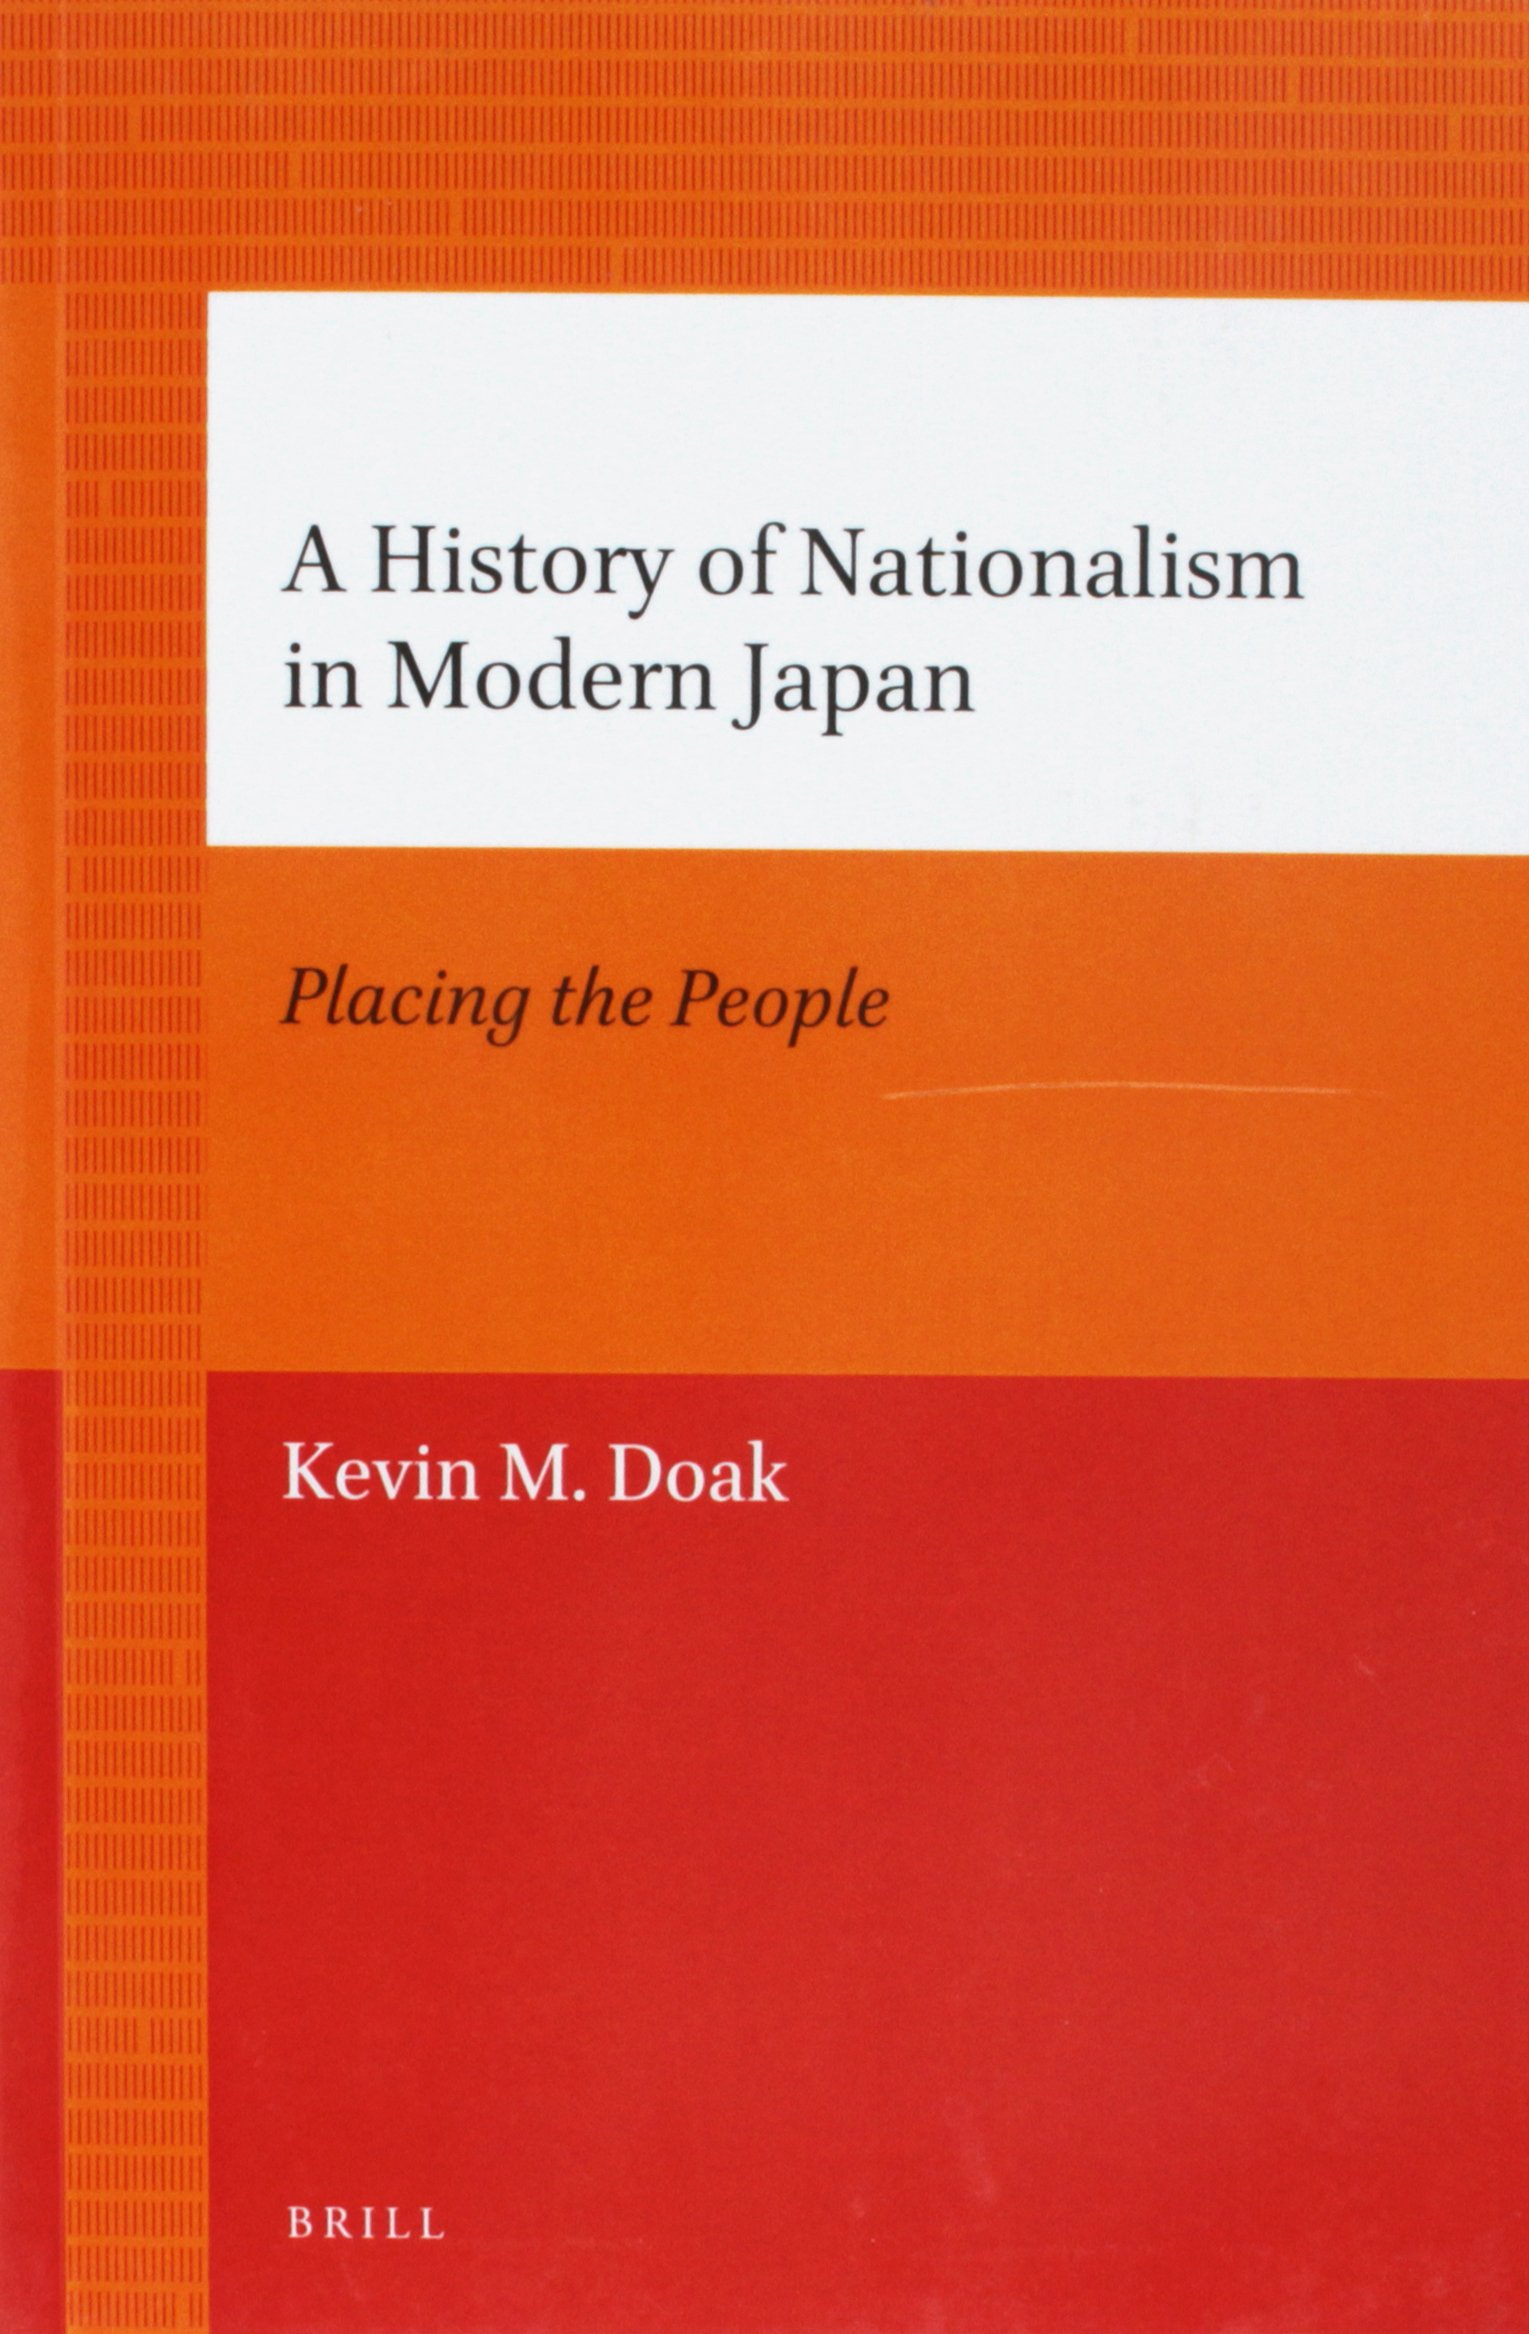 Download A History of Nationalism in Modern Japan: Placing the People (Brill's Paperback Collection) pdf